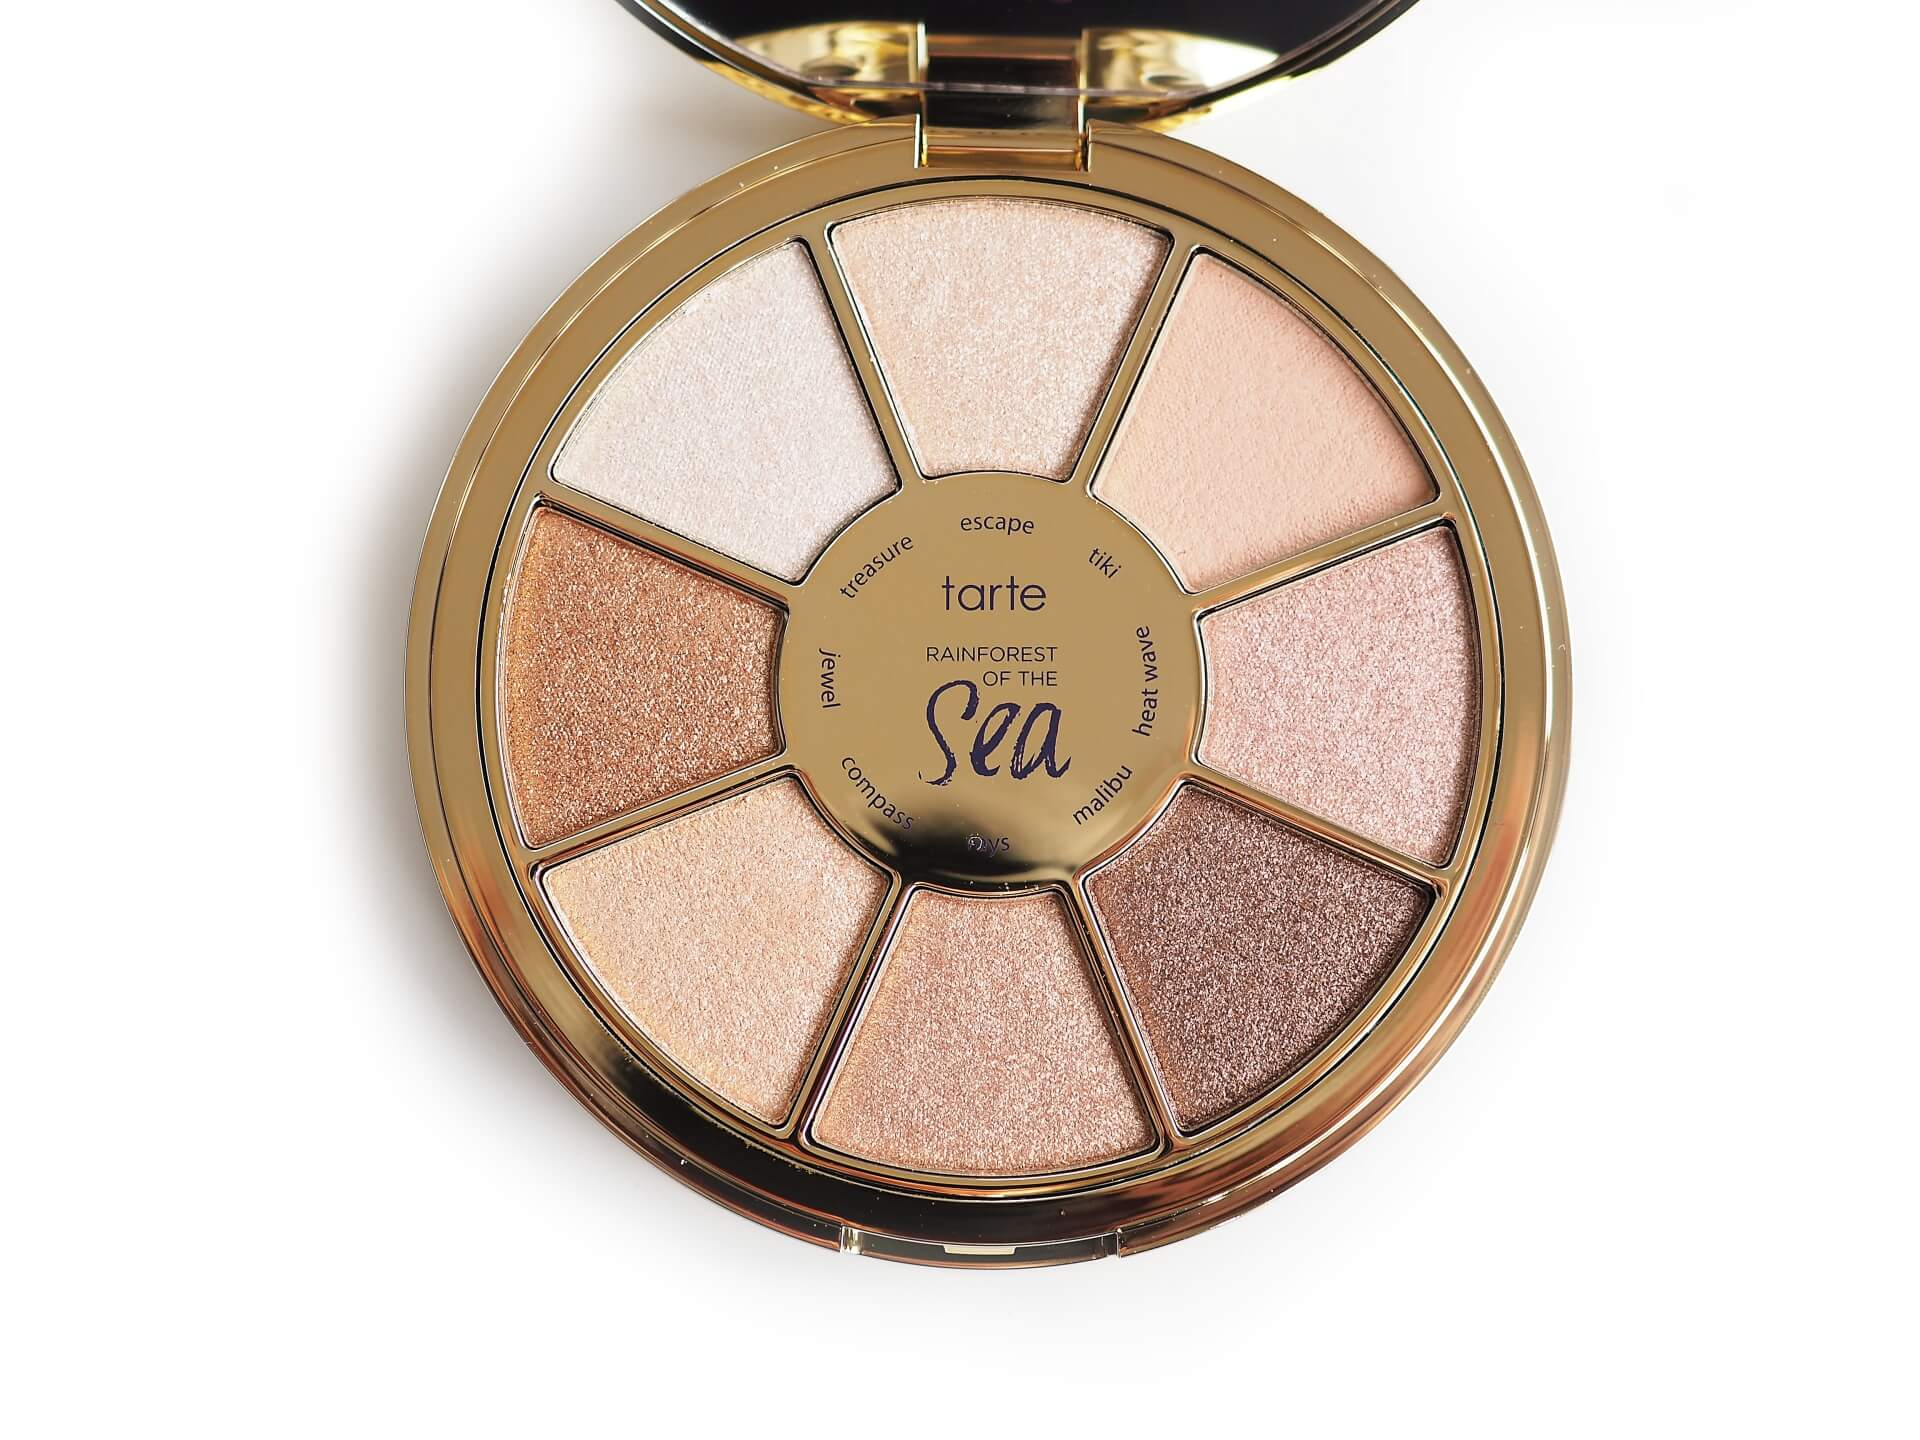 Tarte Rainforest of the Sea vol. III Eyeshadow Palette